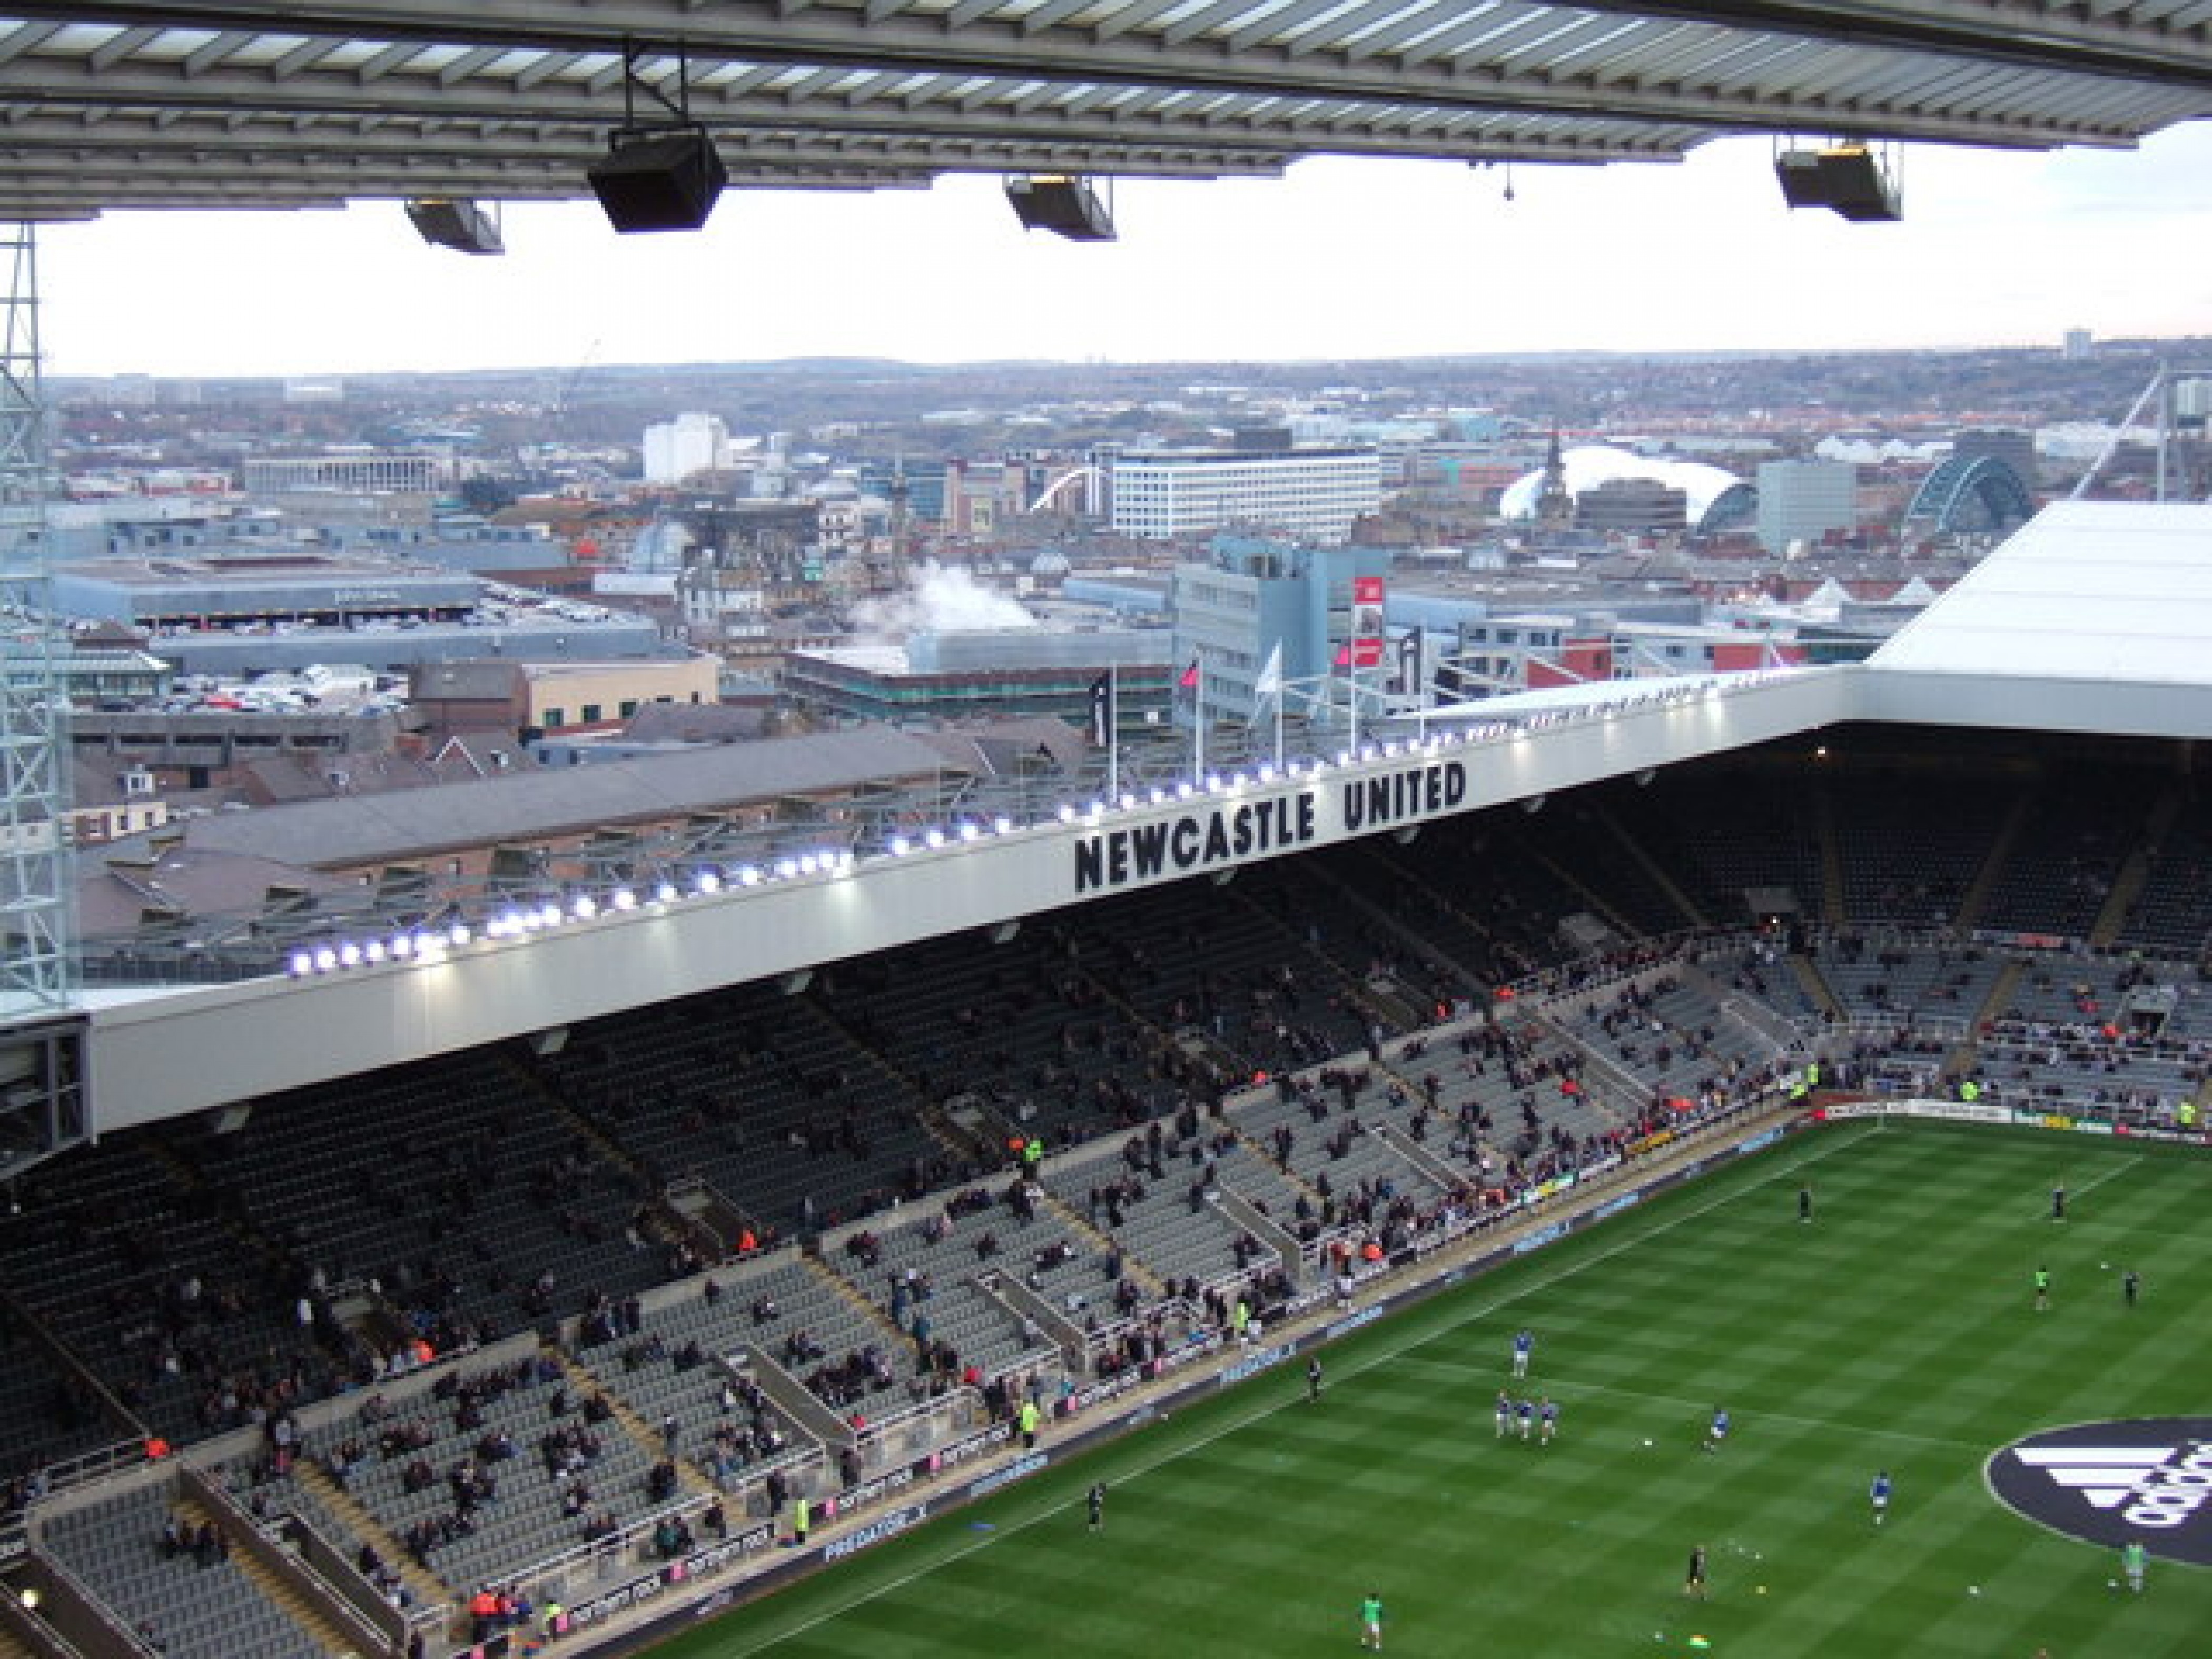 Newcastle United vs Crystal Palace preview: Time for Magpies to start picking up points